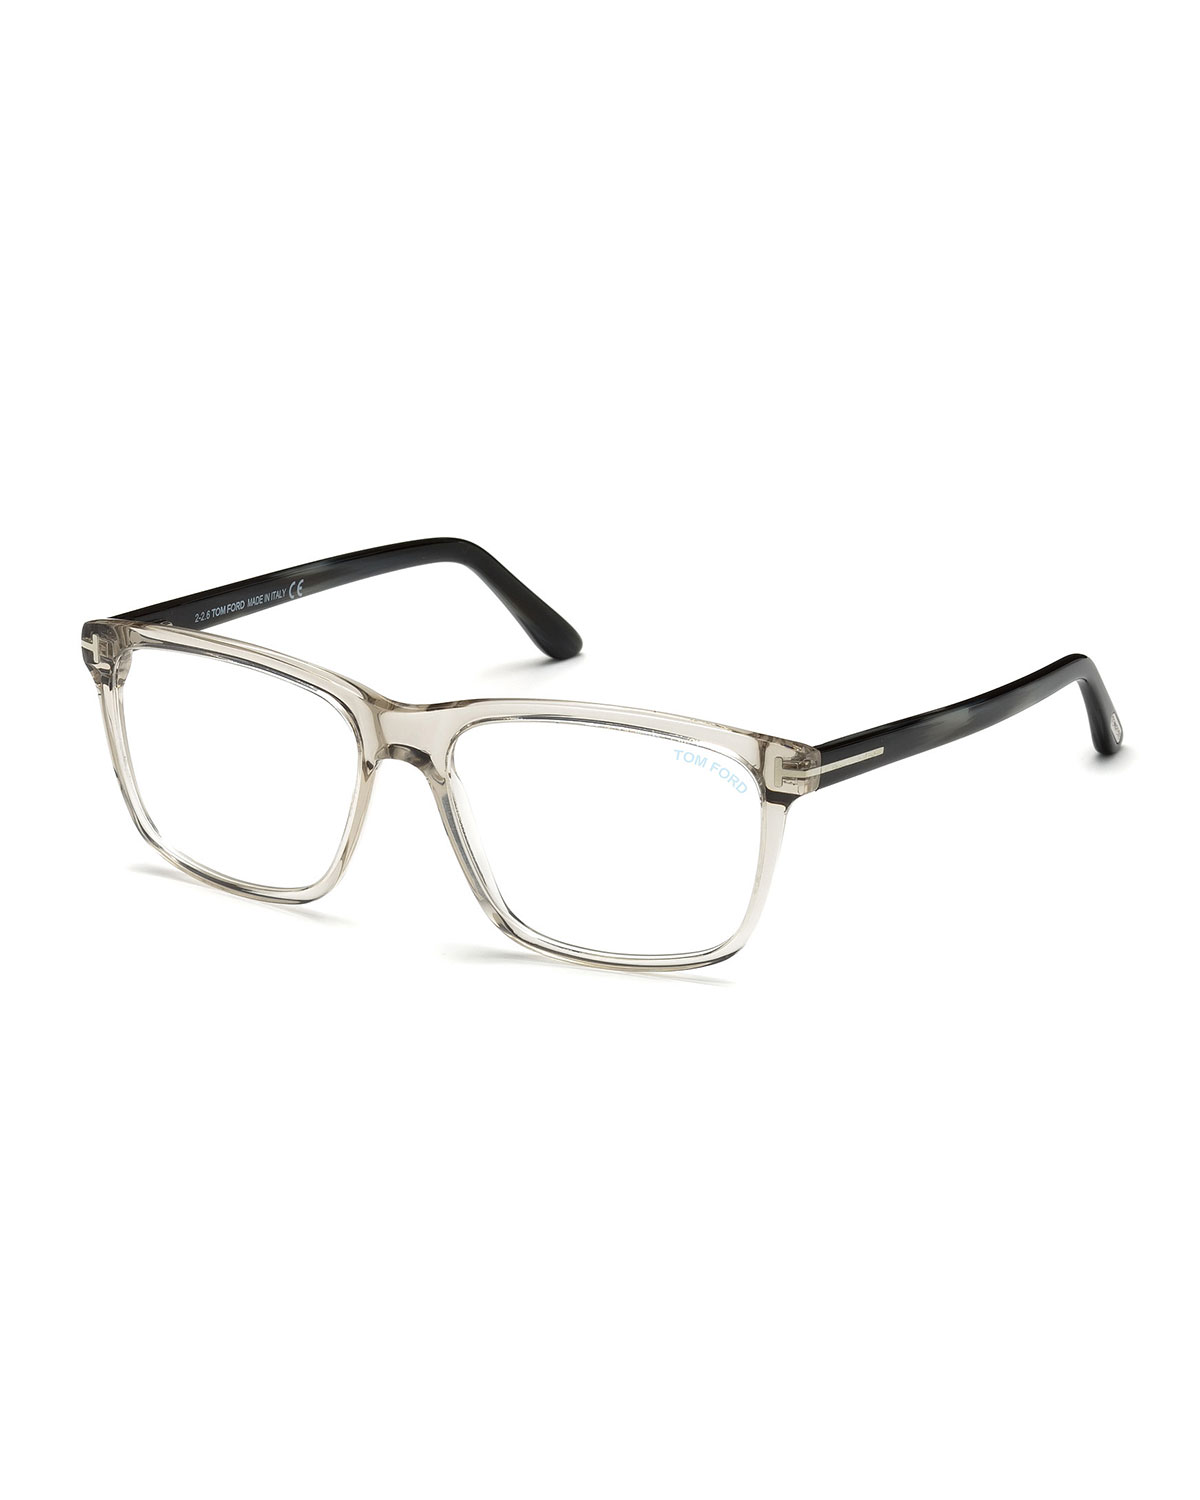 52ae4d2bf05 TOM FORD Square Acetate Optical Glasses